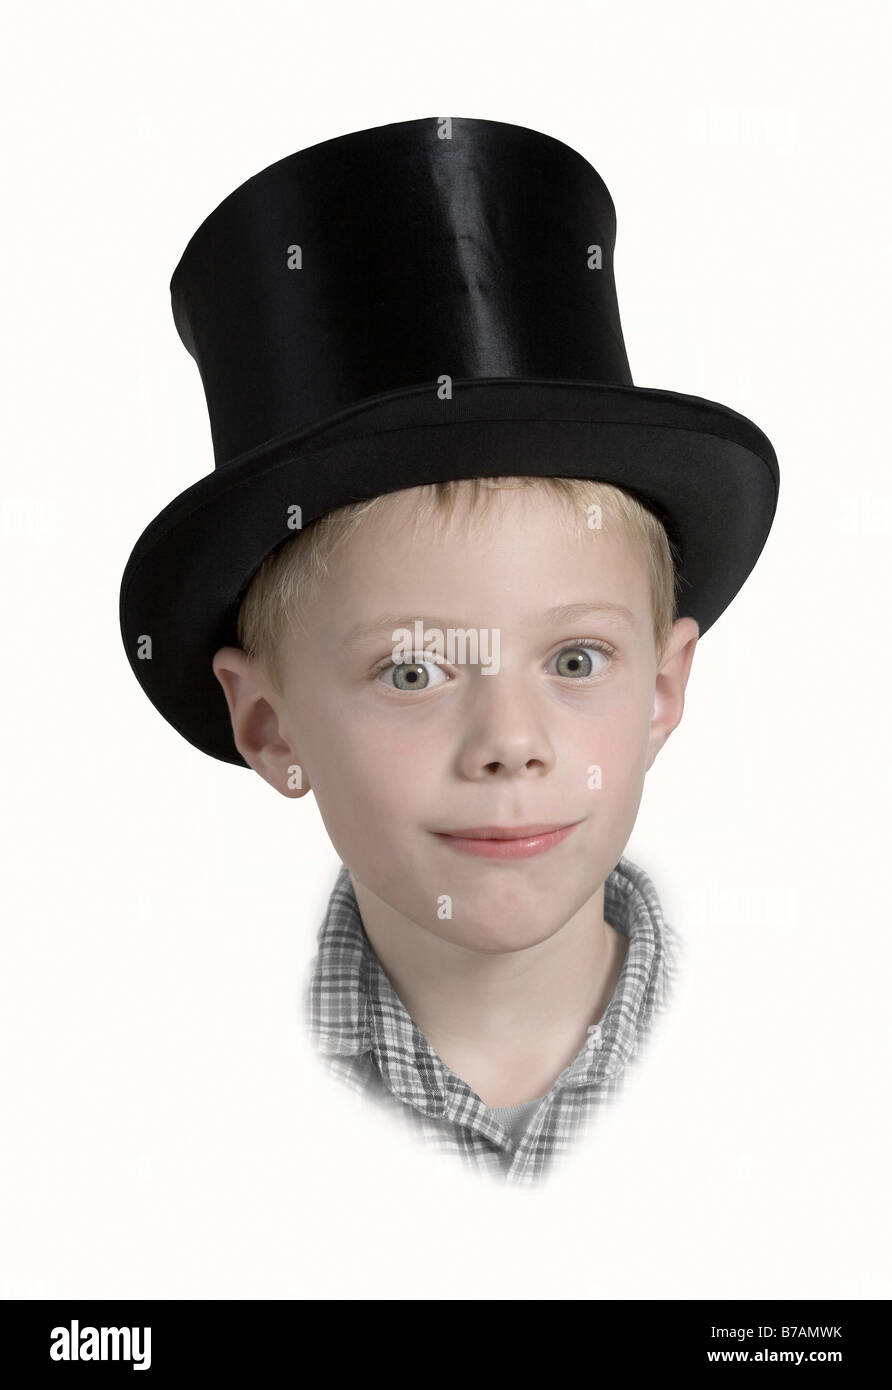 6-year-old boy wearing a top hat, nostalgia - Stock Image